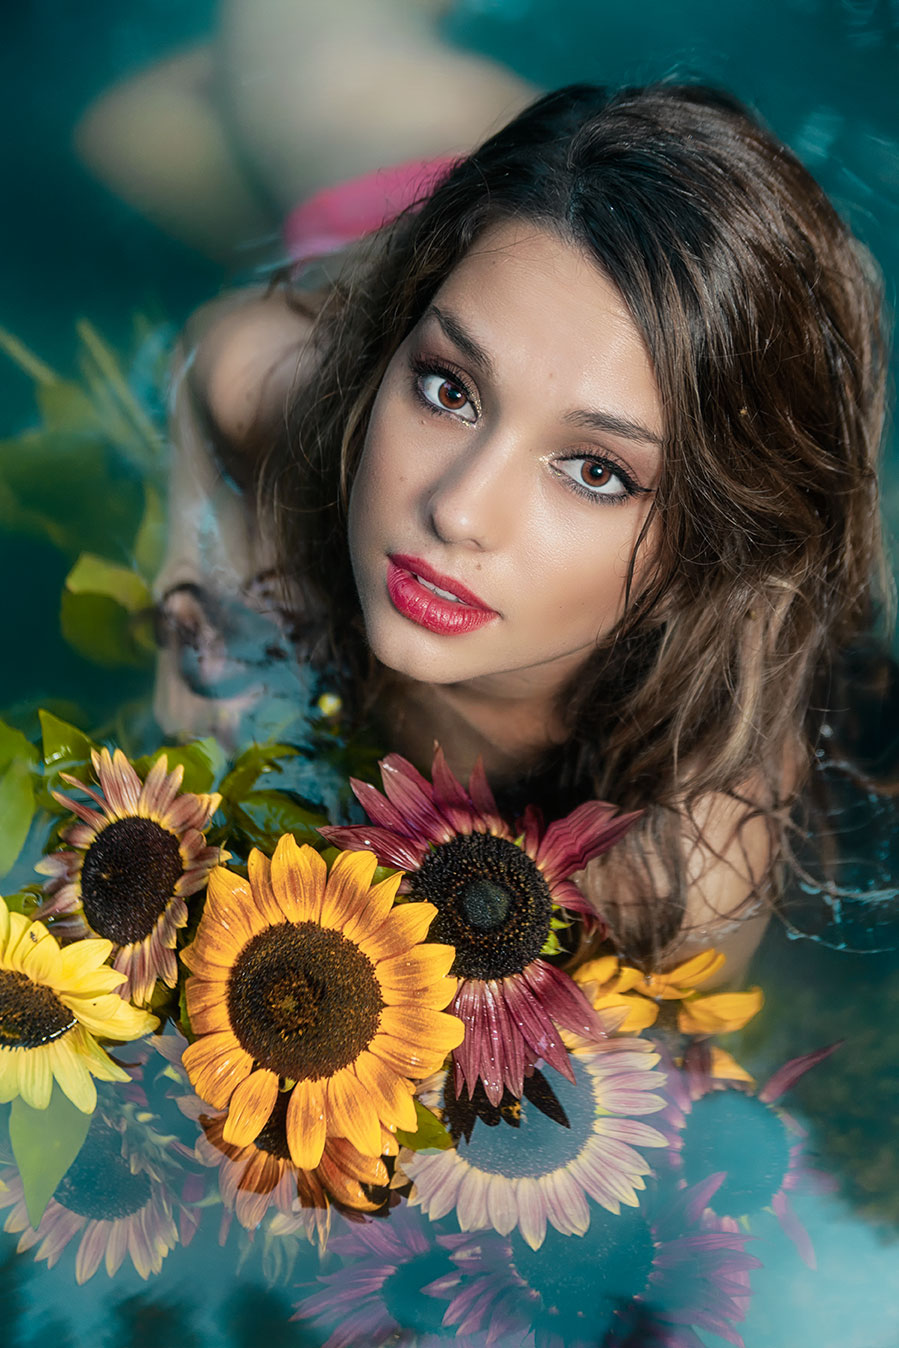 03-portrait-margot-eaux-bourboule-bouquet-tournesol-03